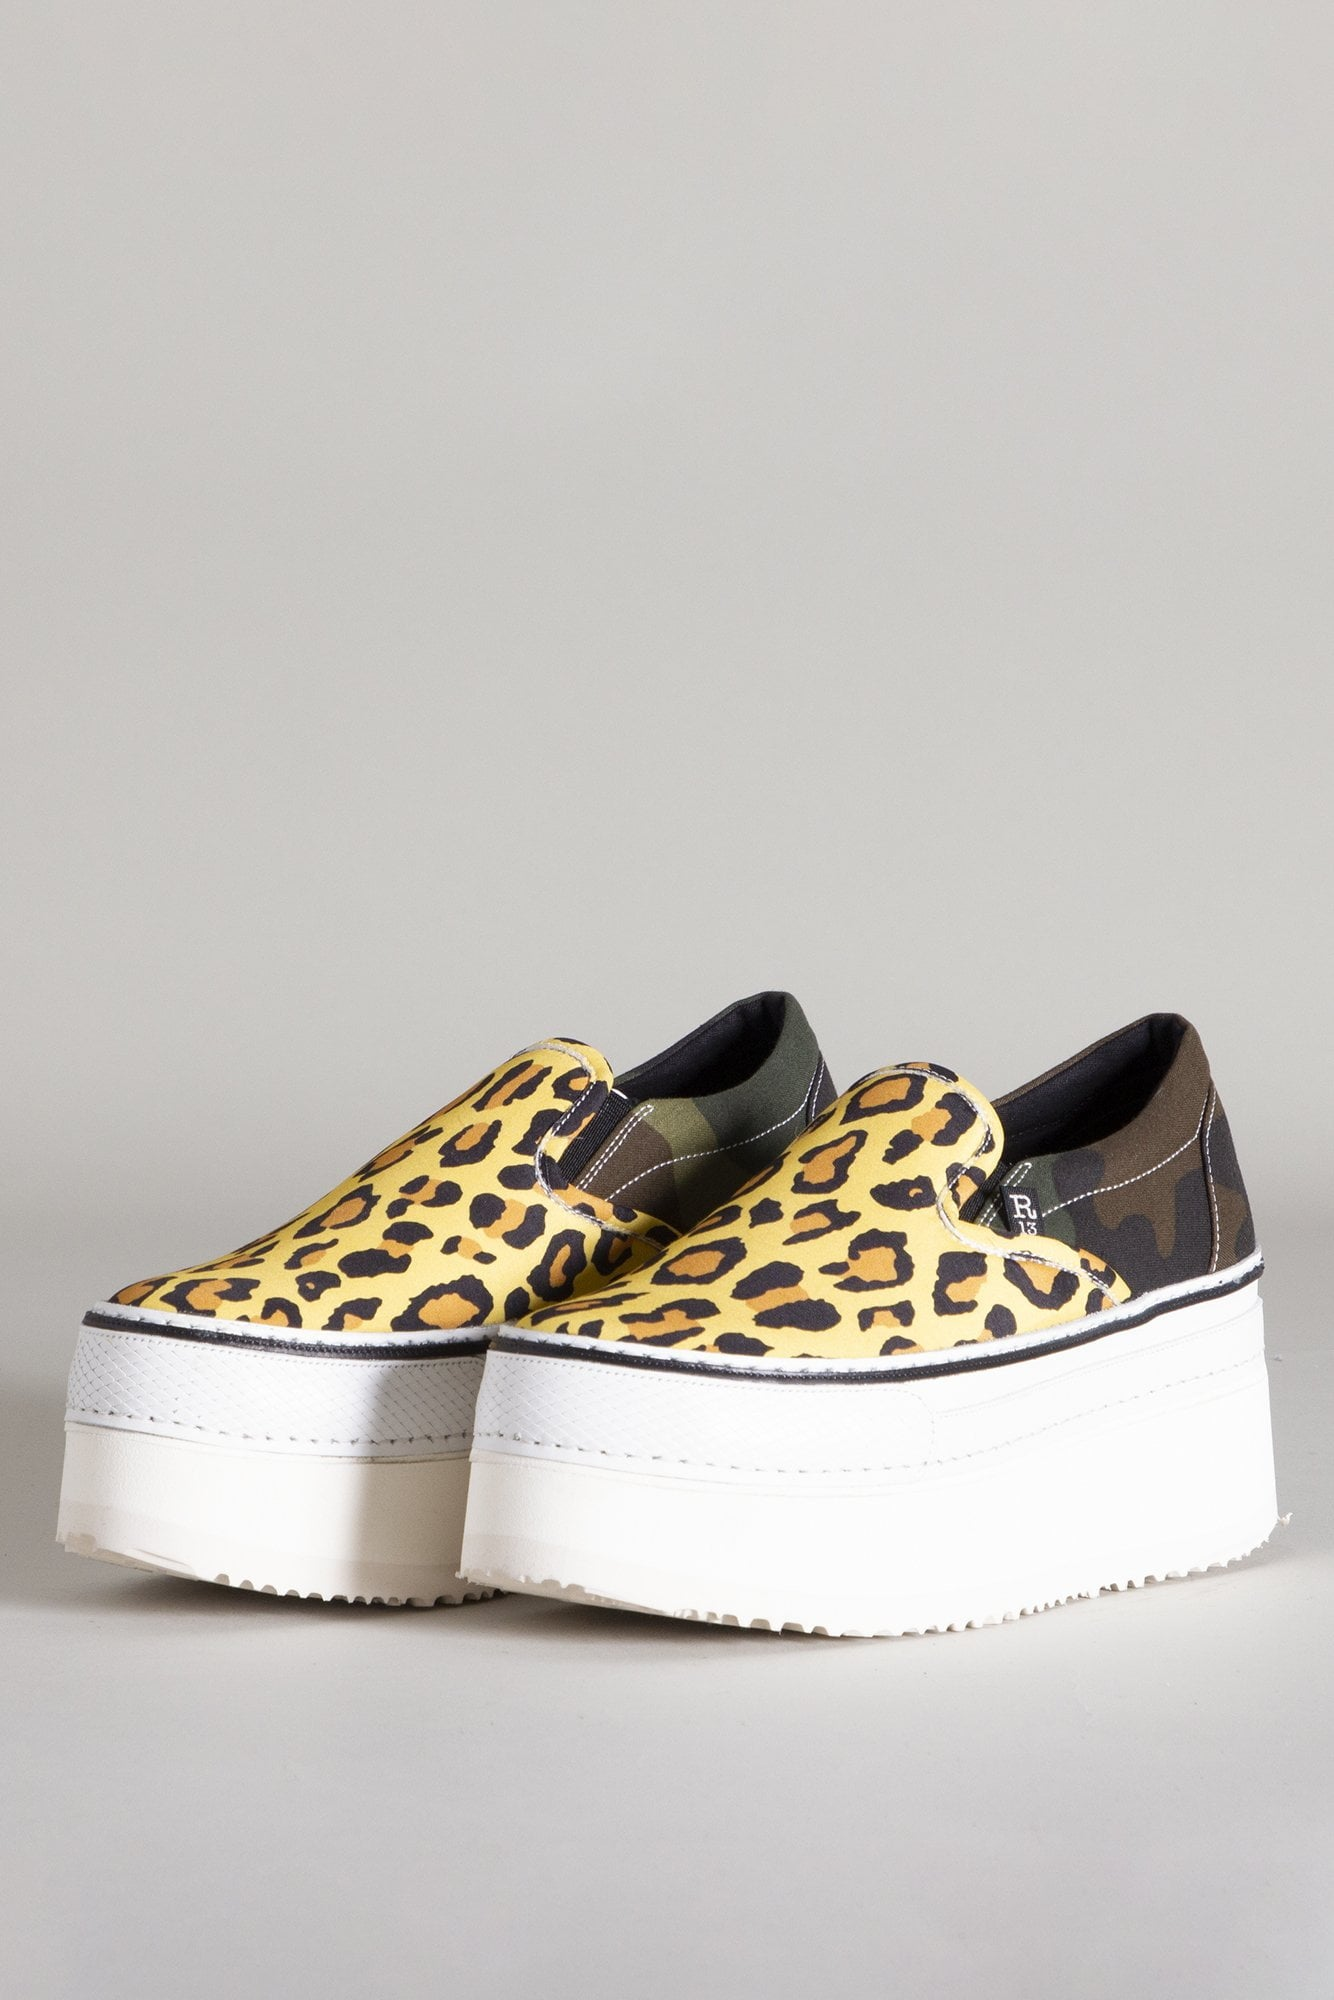 Slip-on Platform Sneaker - Yellow Leopard with Camo